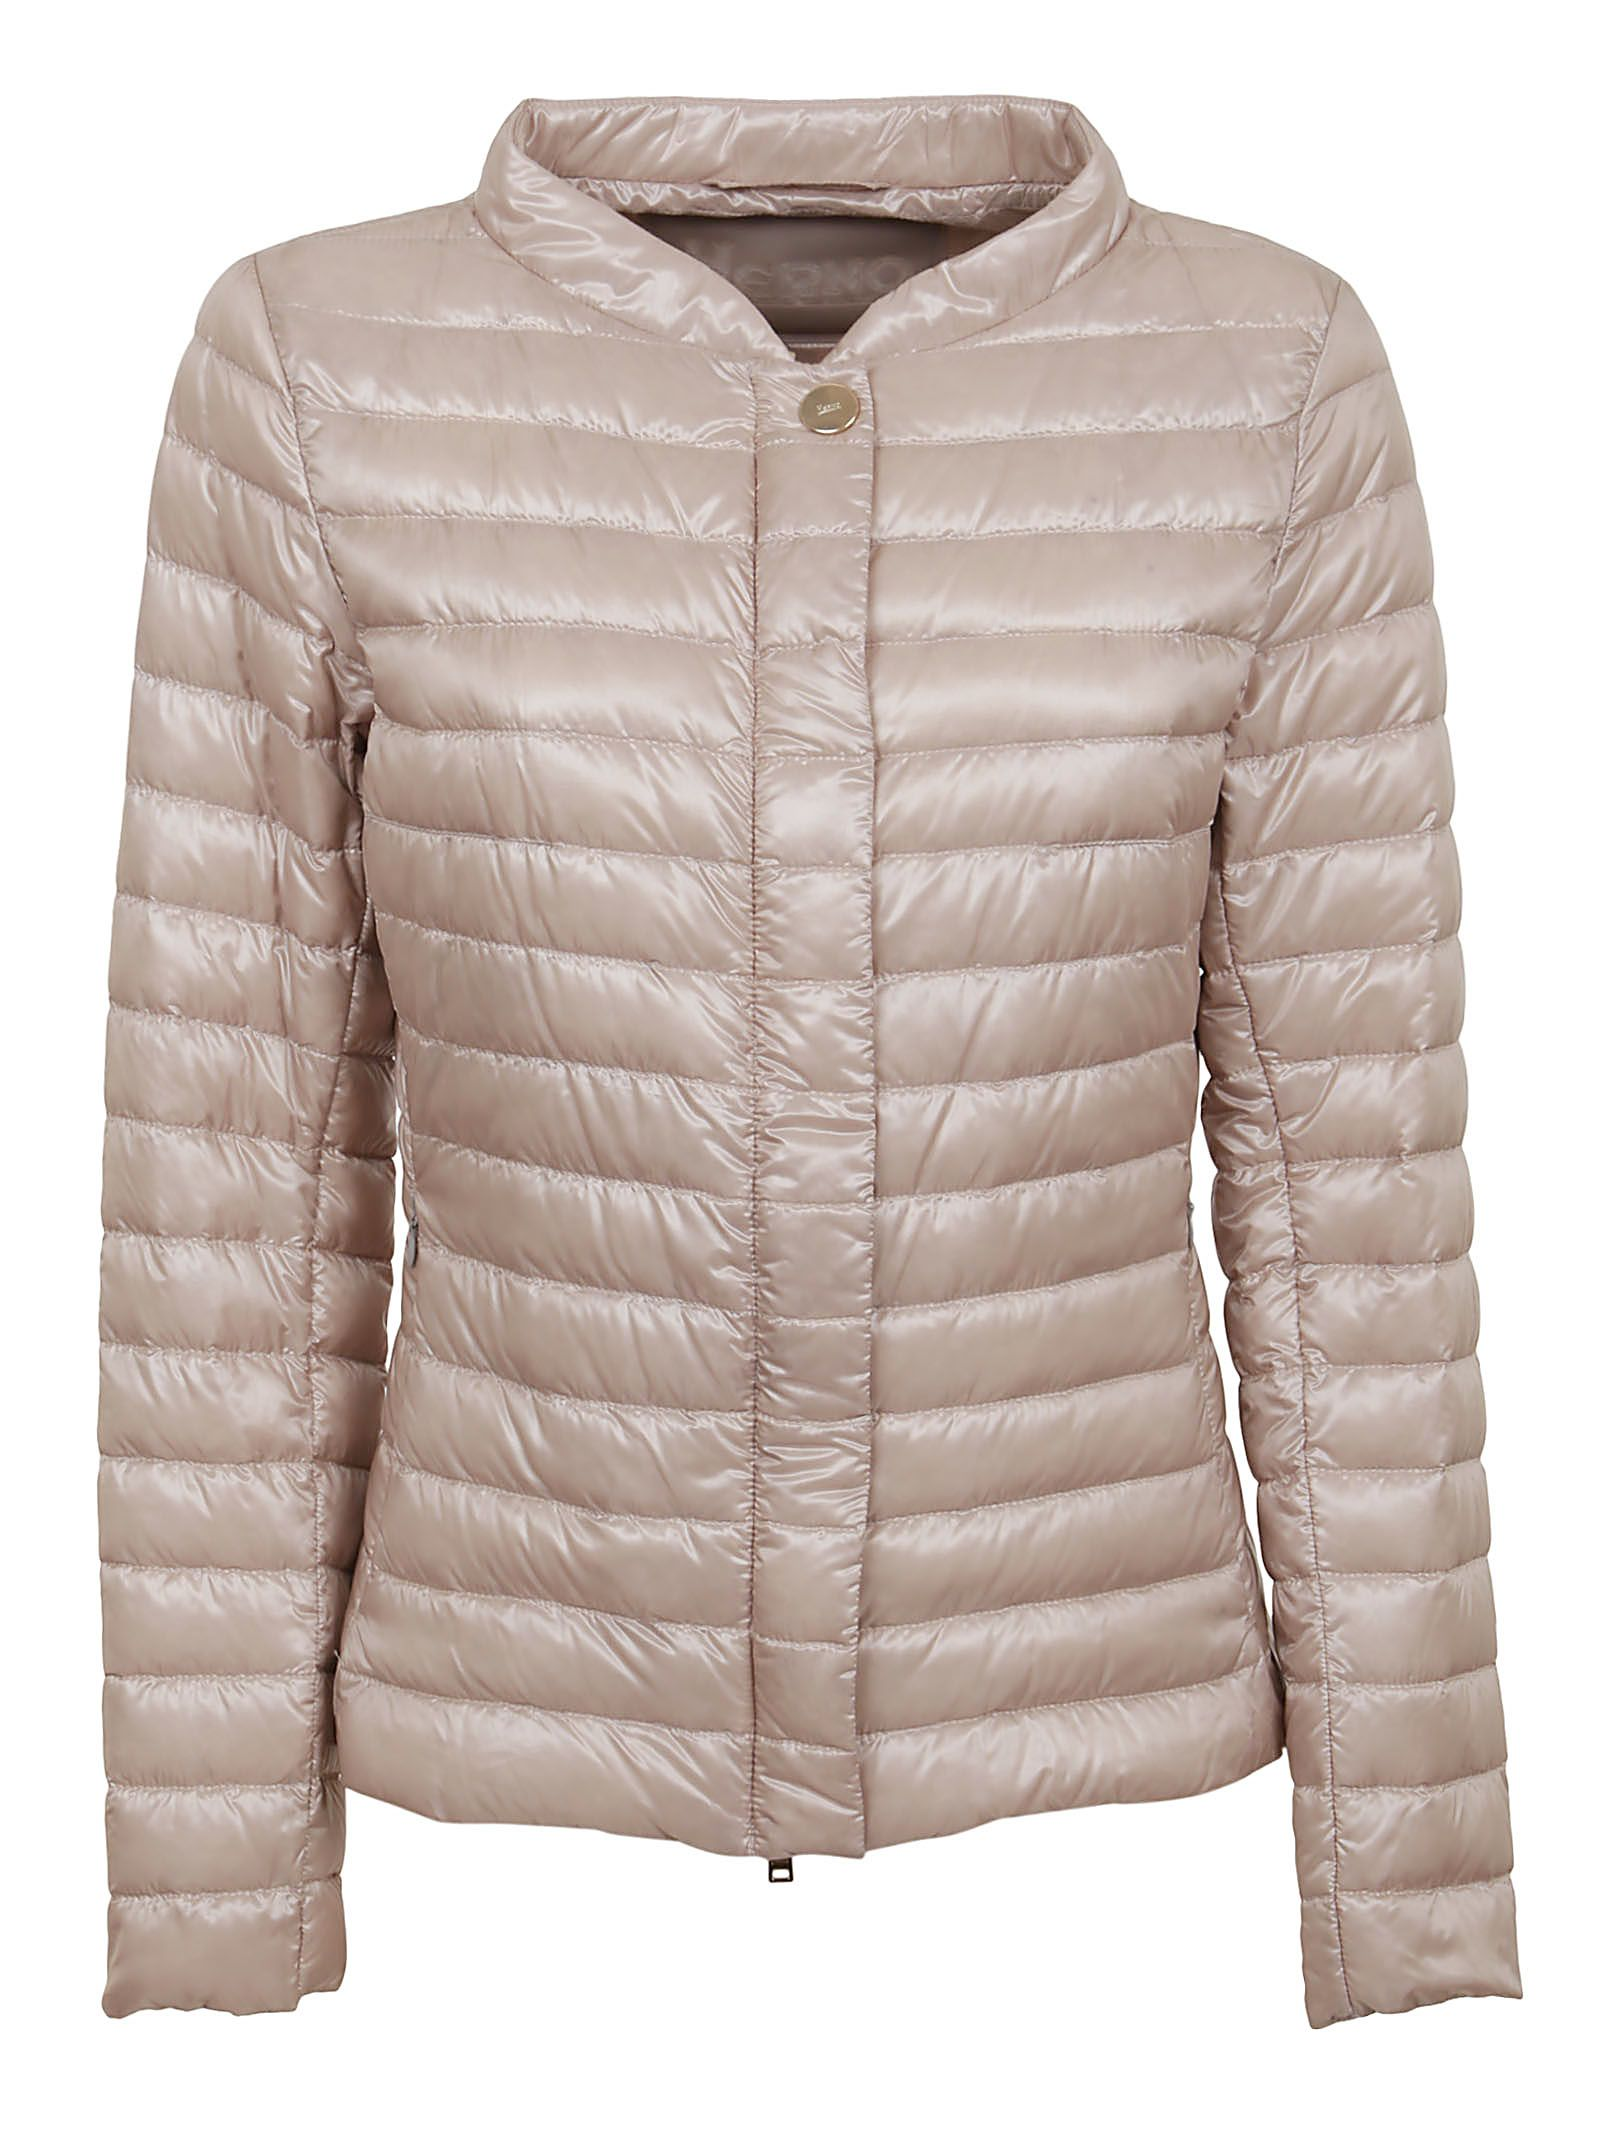 Herno HERNO WOMEN'S PI0608D120174030 PINK POLYESTER DOWN JACKET